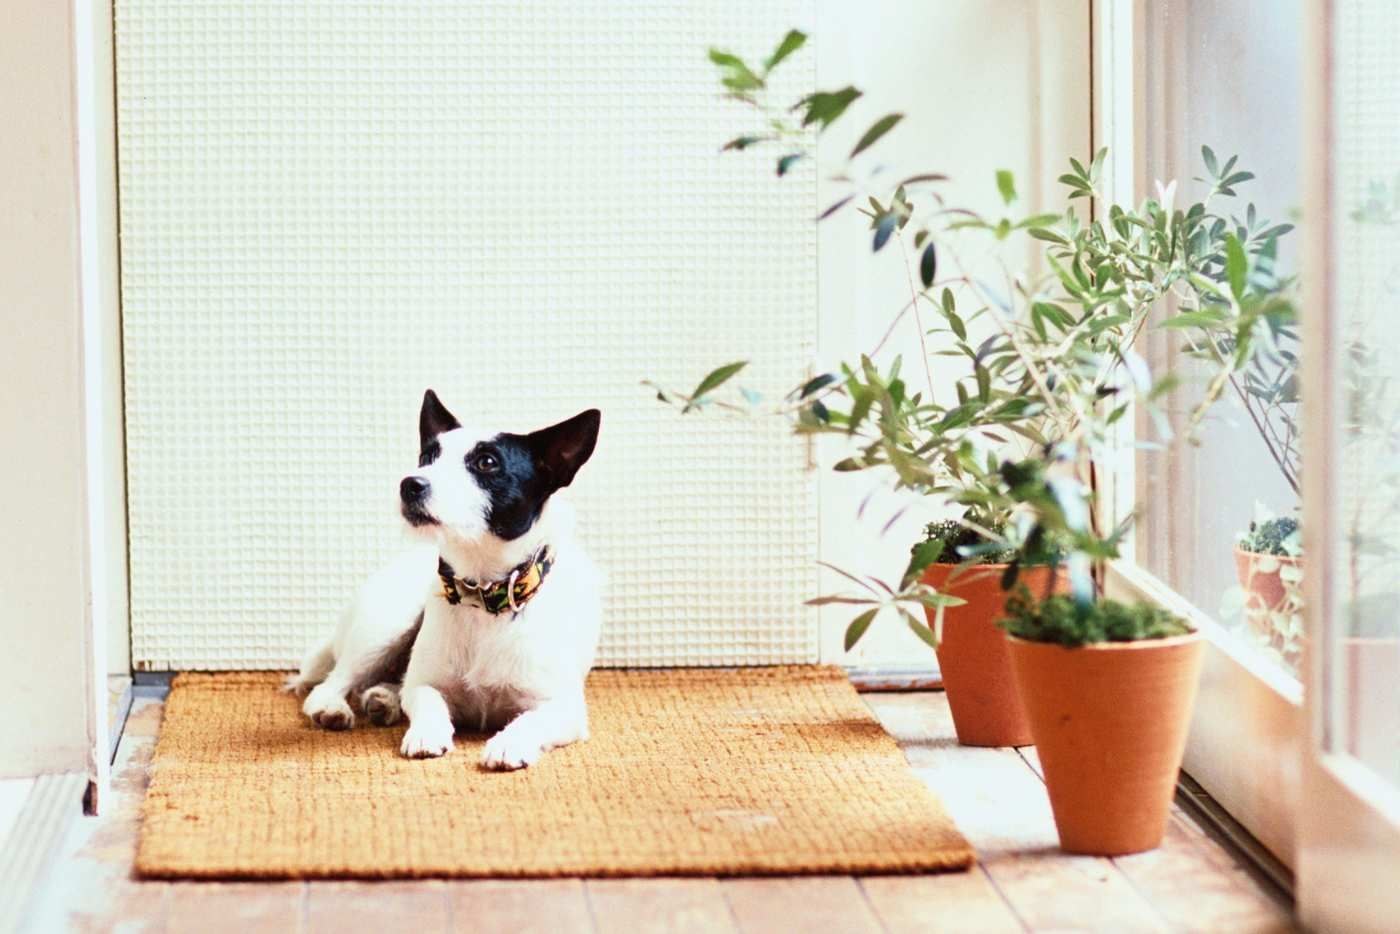 The Best Cat And Dog Safe Plants According To Experts In 2020 With Images Dog Safe Plants Cat Plants Cool Plants